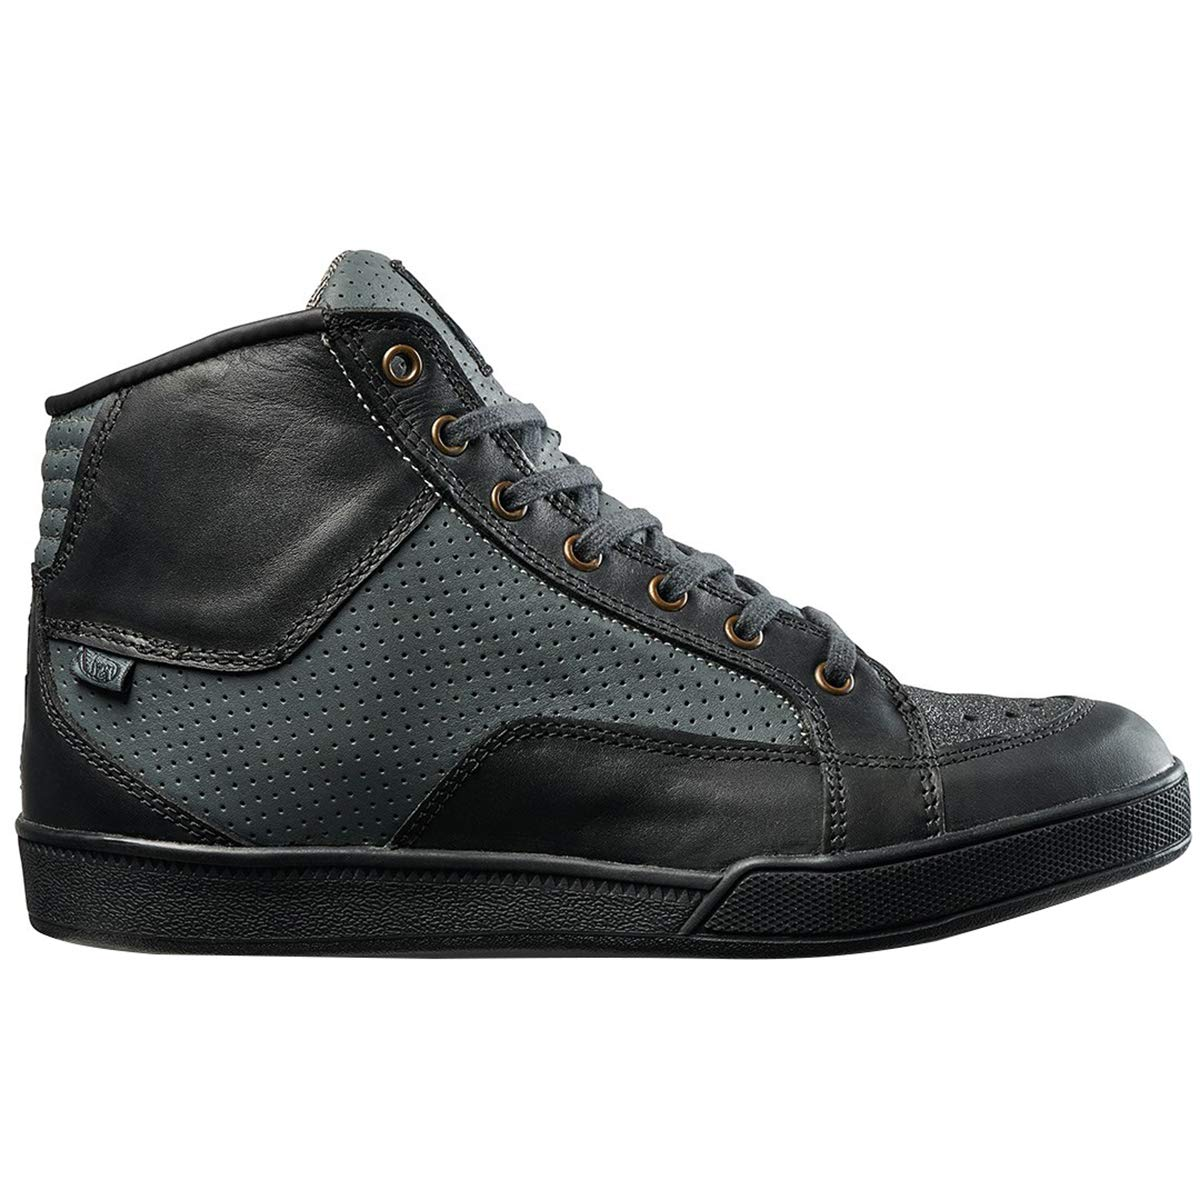 Black Charcoal 9.5 Roland Sands Design Fresno Perforated Mens Street Motorcycle Shoes